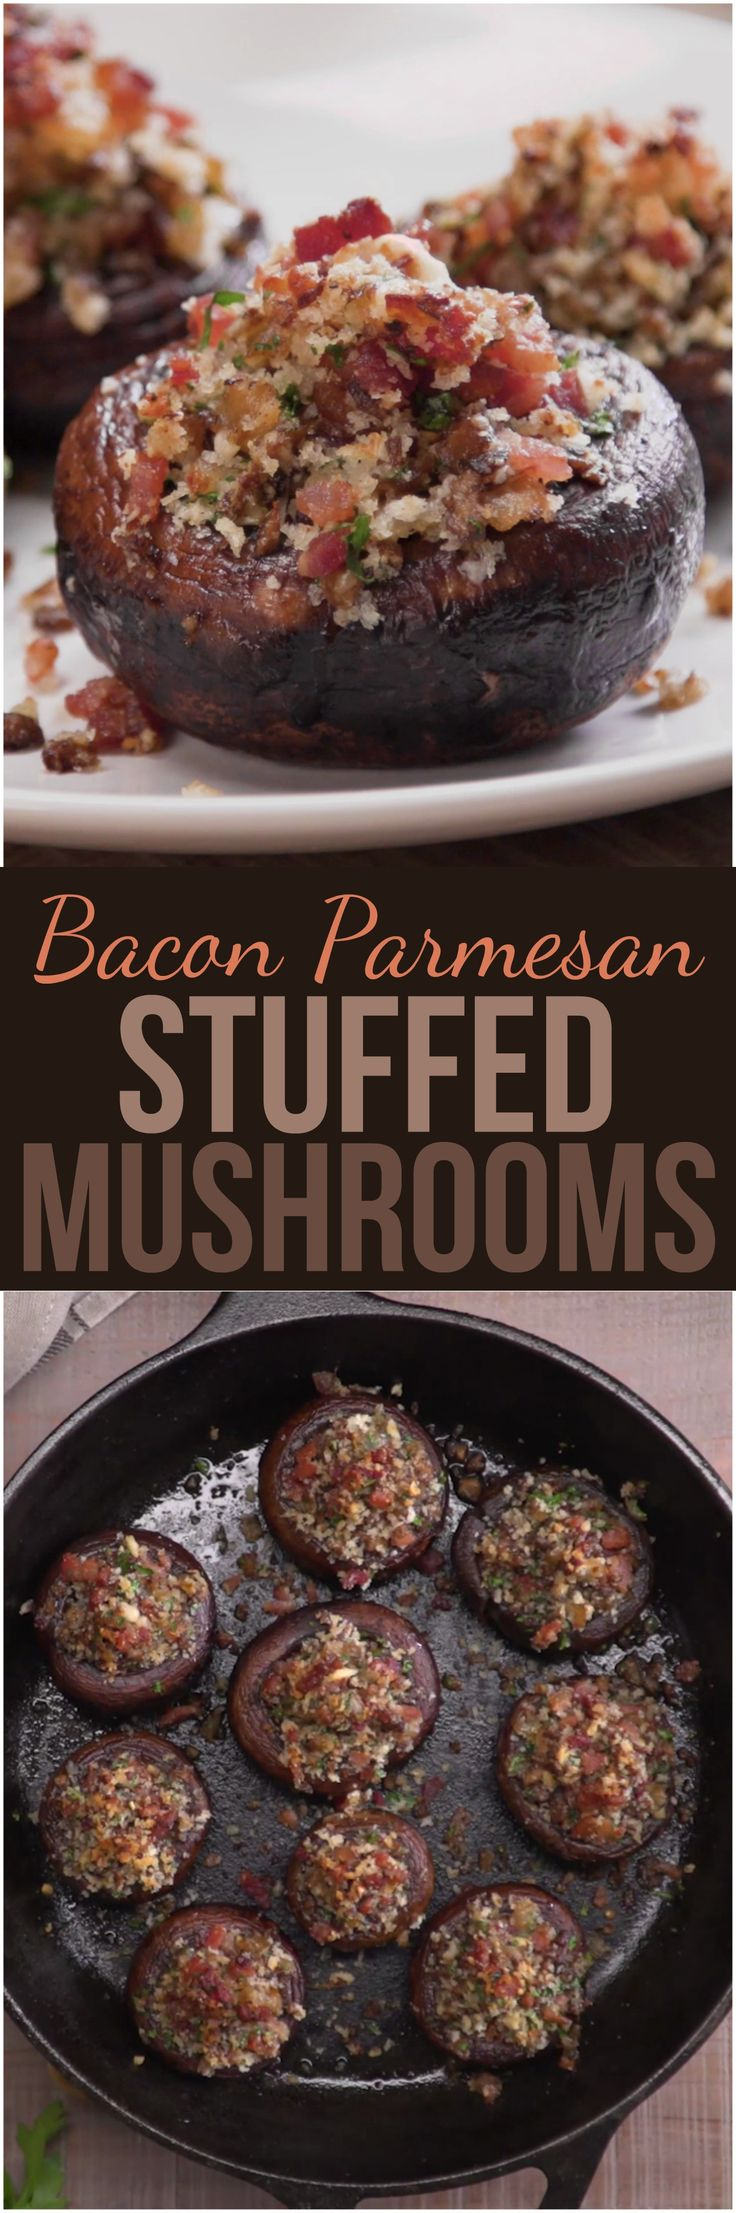 We stuffed gorgeous sautéed cremini mushroom caps with a mouthwatering mixture of bacon, Parmesan cheese, and herbs, and then we baked them to crispy, caramelized perfection. These quick and easy party bites will disappear as soon as you bring them out.